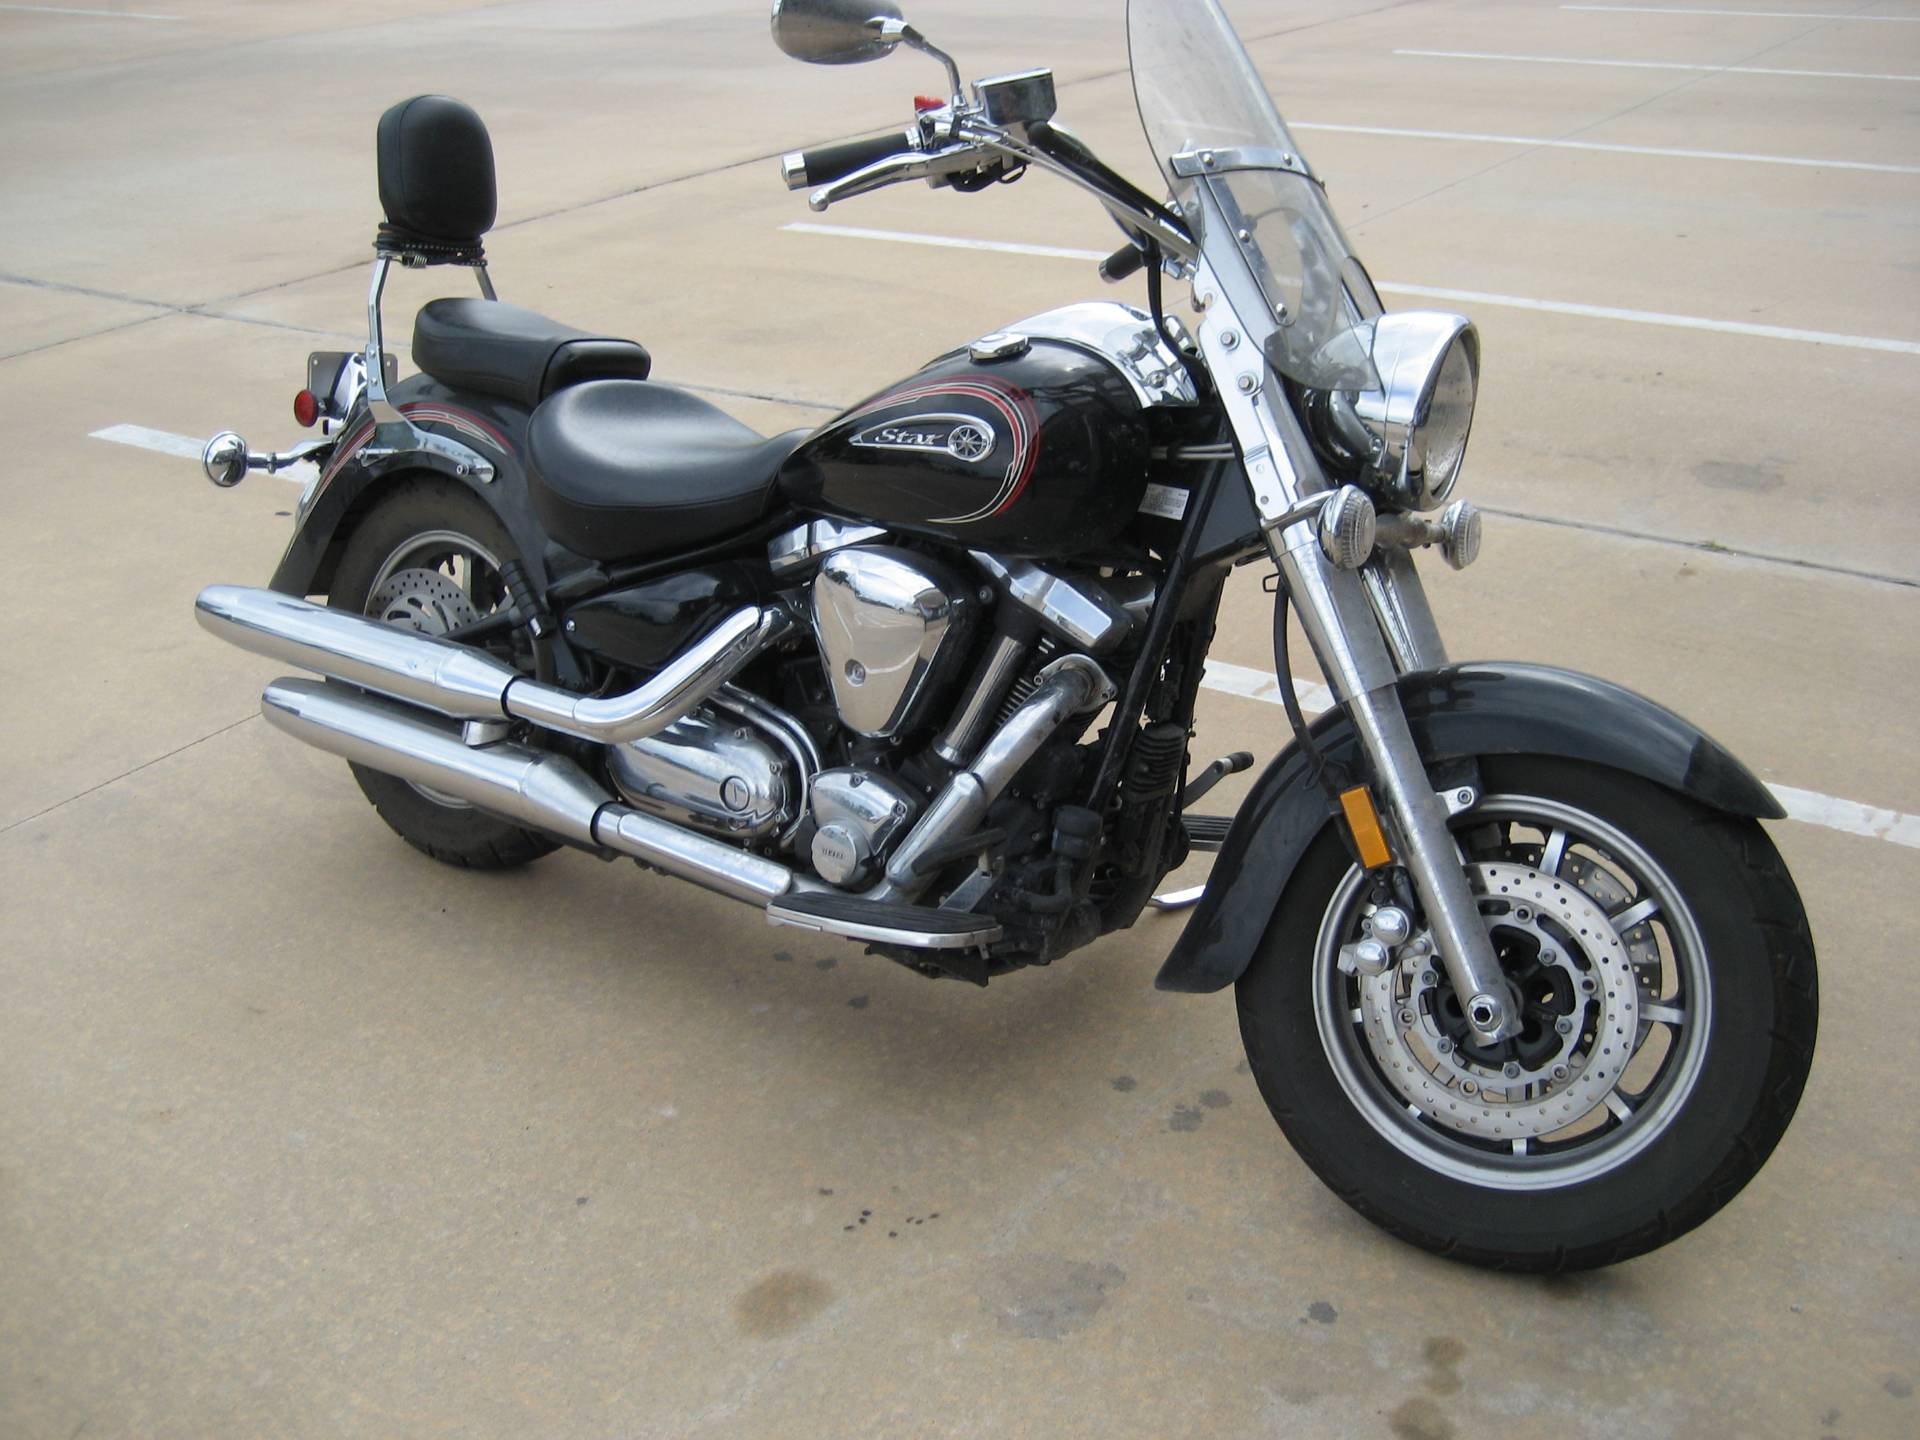 Used 2013 Yamaha Road Star S Motorcycles in Shawnee, OK | Stock ...